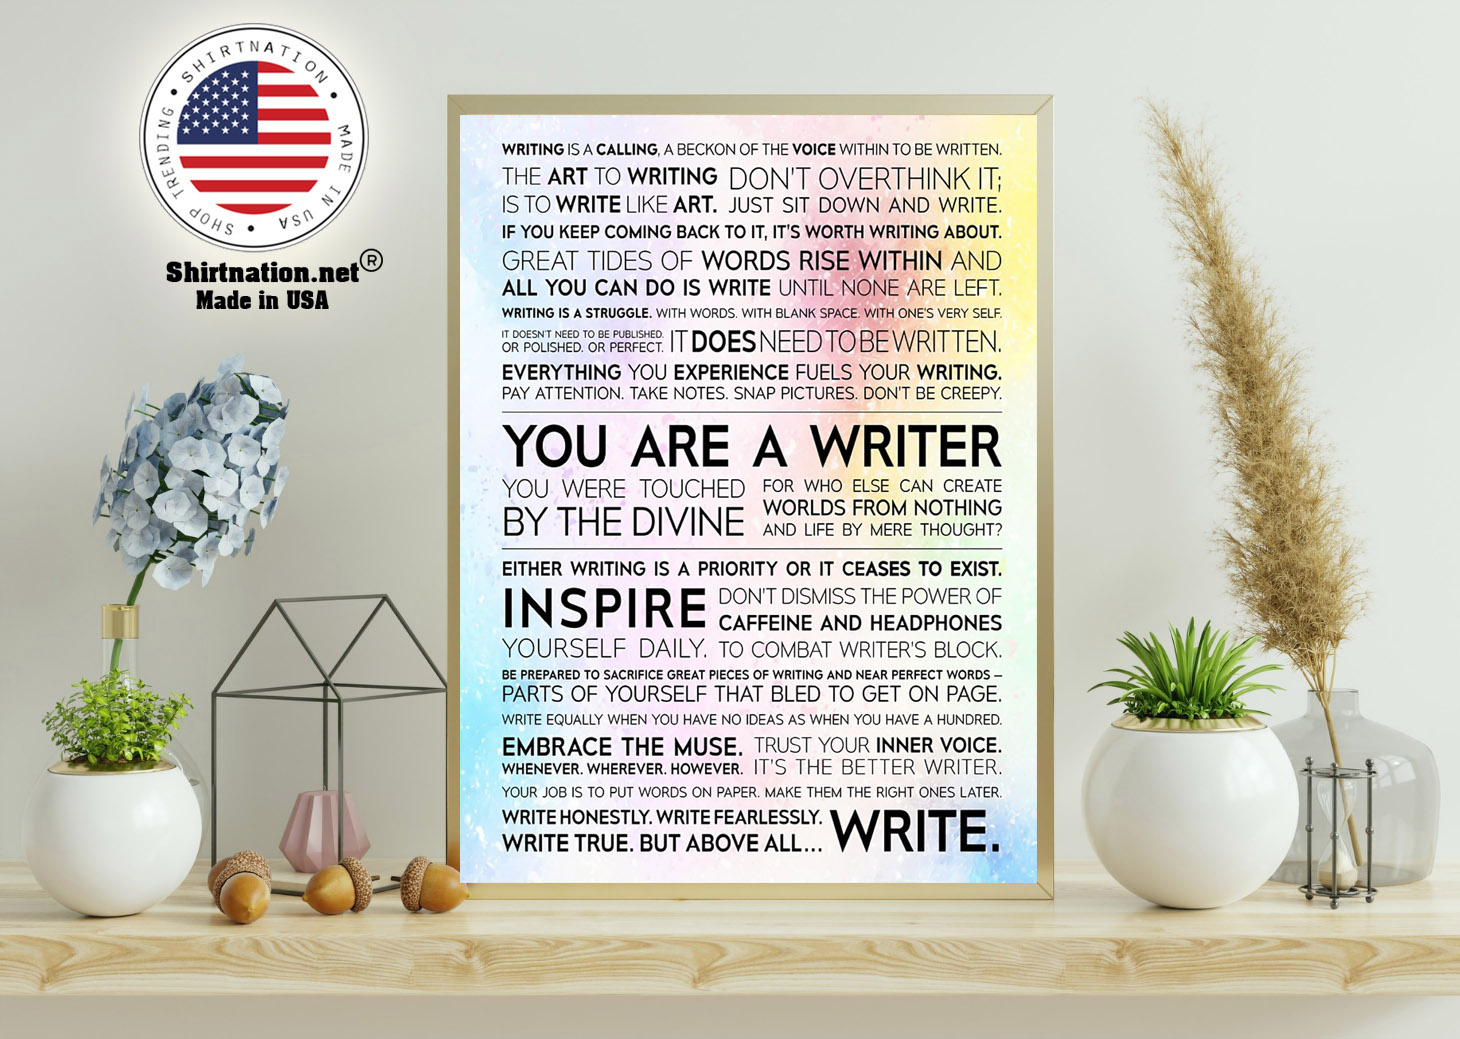 Writer Manifesto writing is a calling a beckon of the voice poster 11